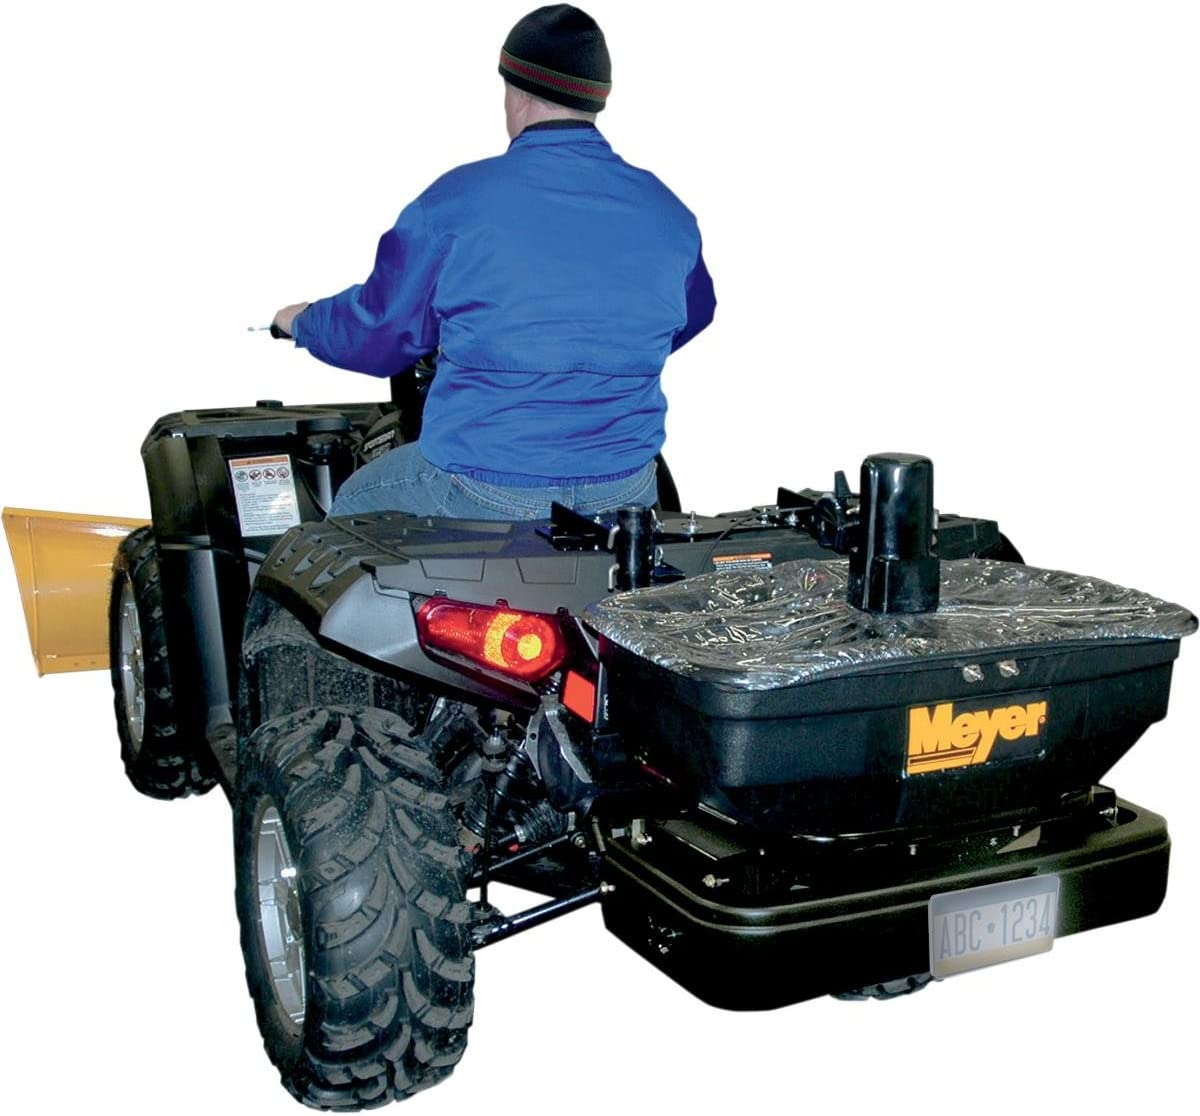 Meyer Charlotte Mall 31125 Challenge the lowest price of Japan ☆ Spreader